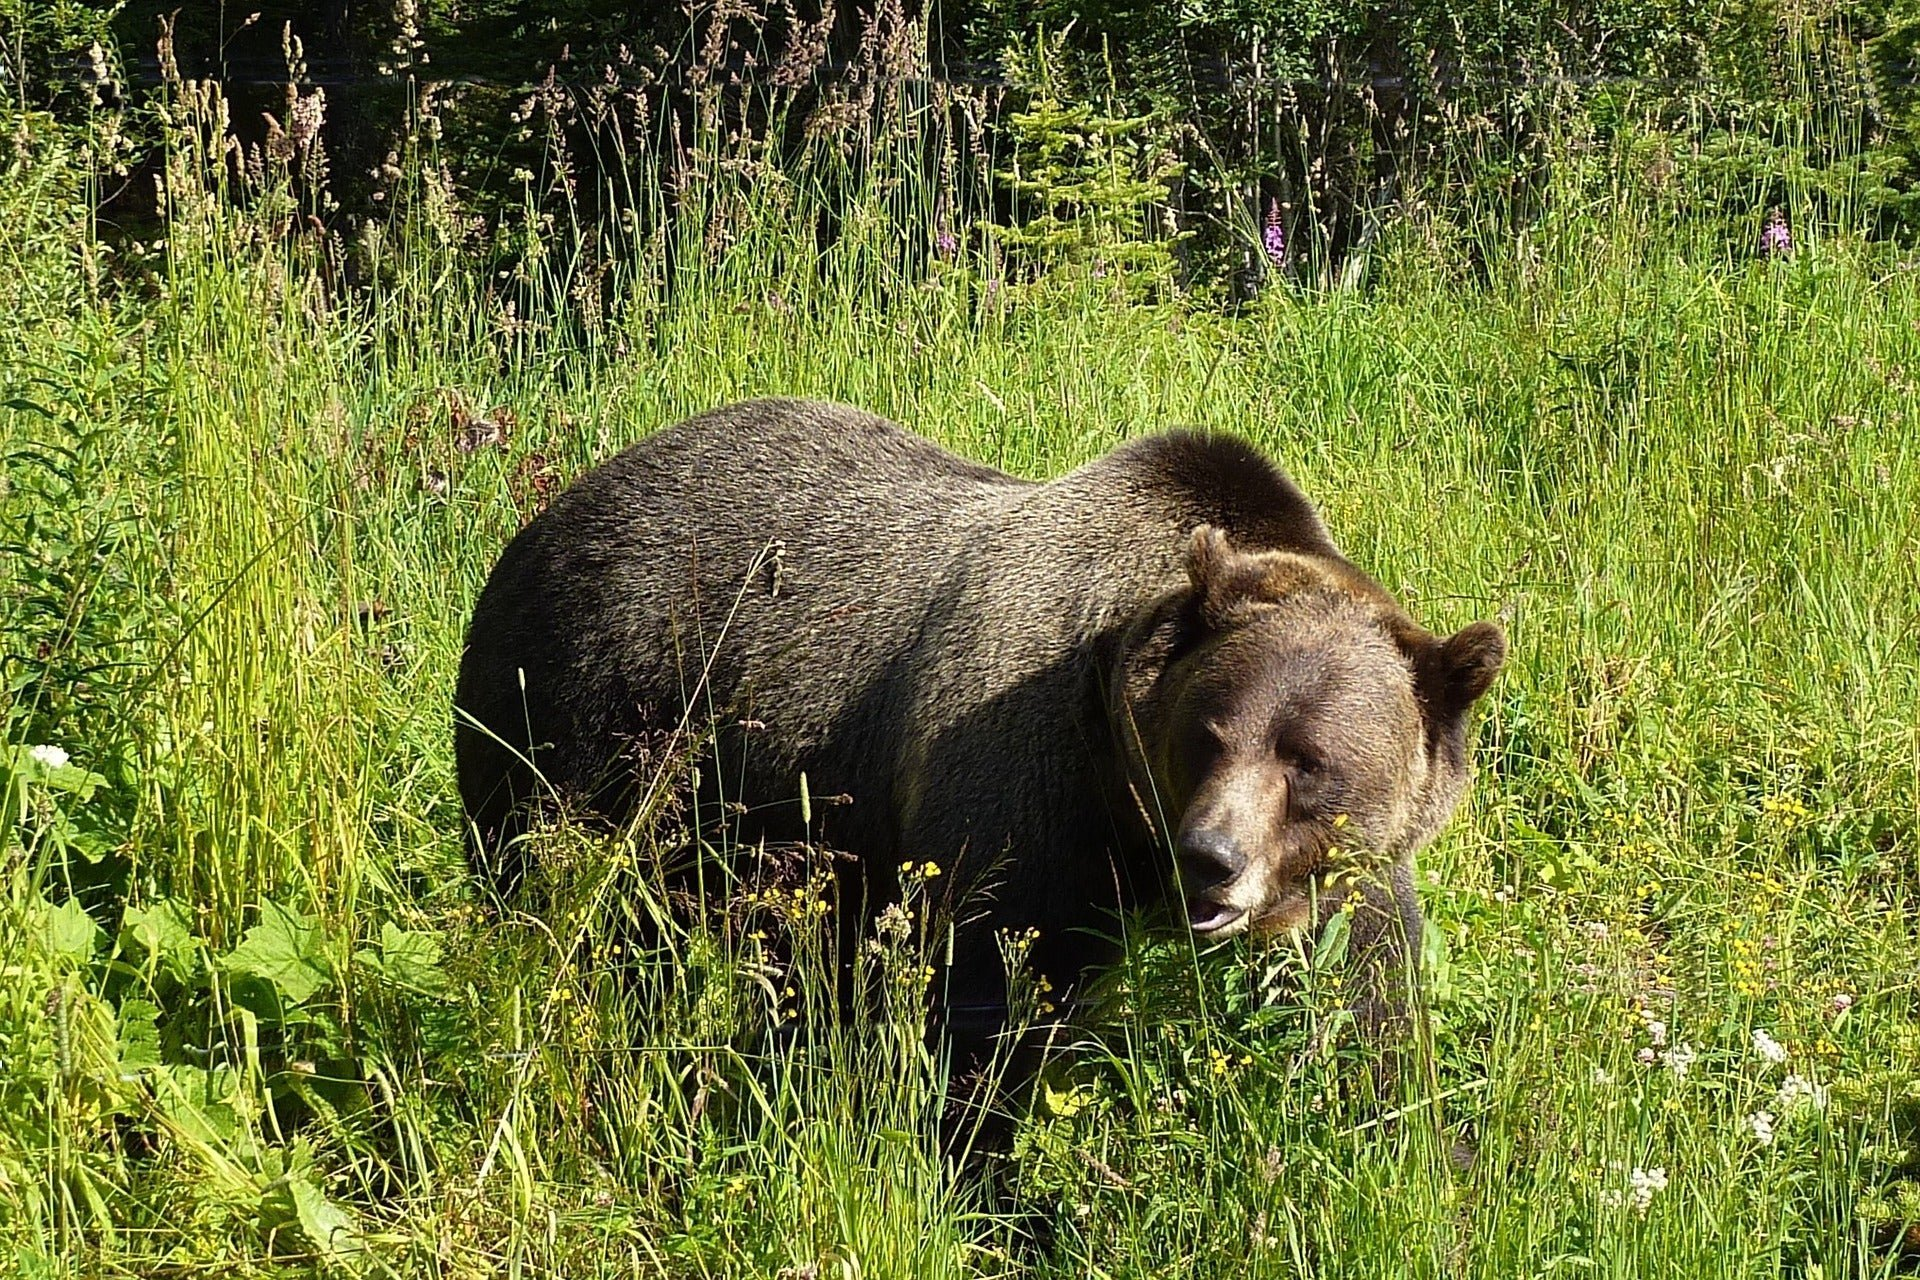 Lone man survives week of grizzly attacks before miraculous rescue